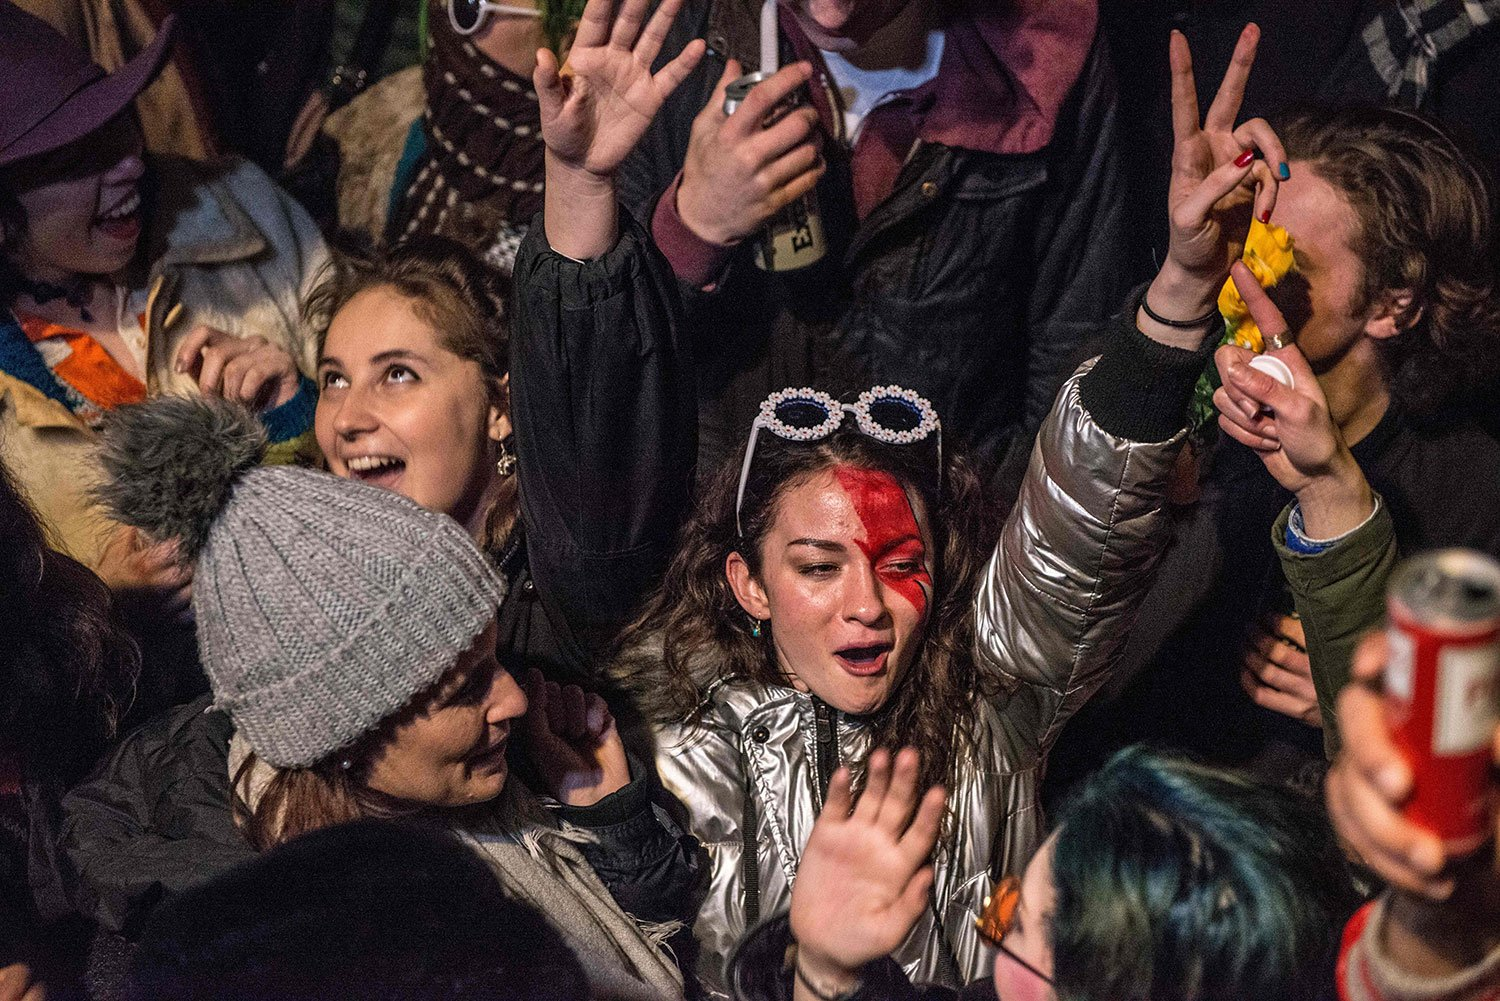 Crowds gather outside the Ritzy cinema in south London to pay homage to Bowie (Photo: CHRIS RATCLIFFE/AFP/Getty Images)